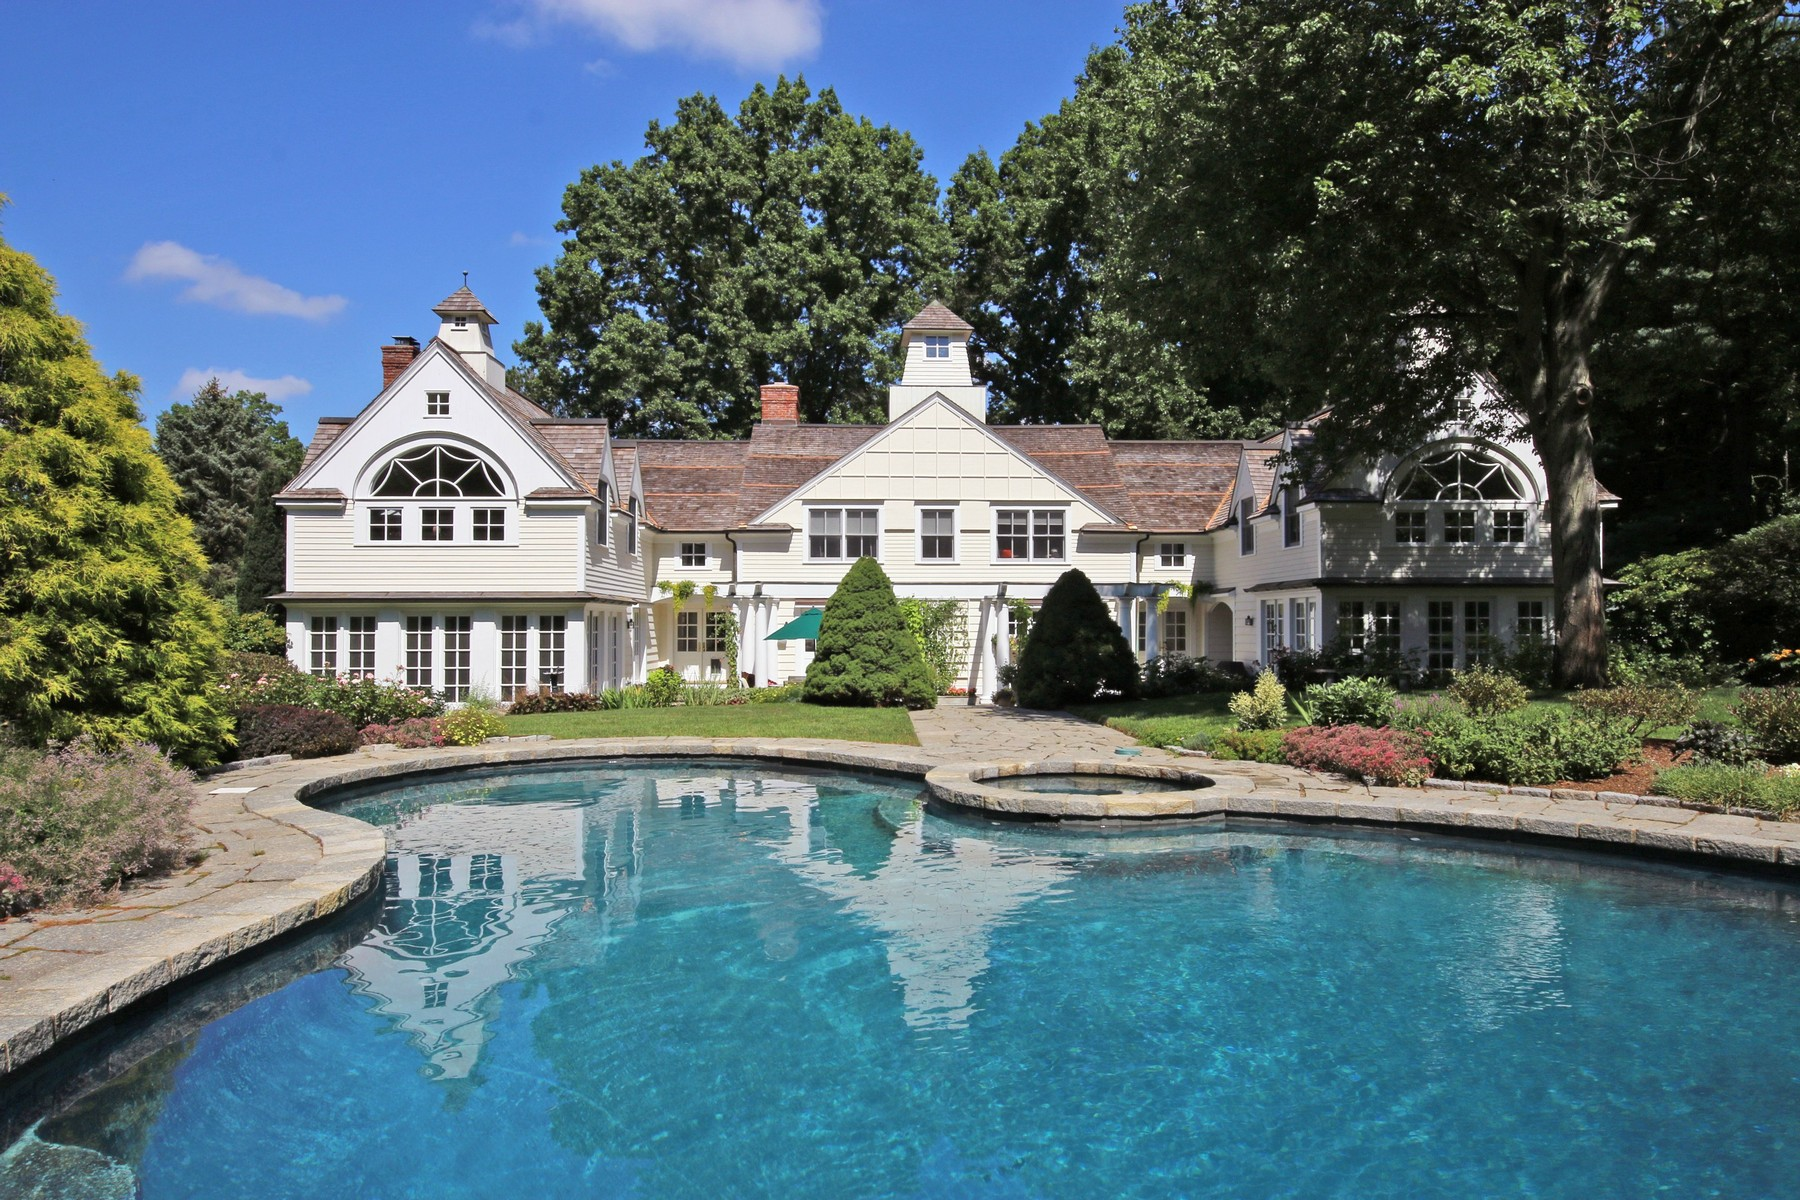 Single Family Home for Sale at EXQUISITE COUNTRY ESTATE 445 Old Academy Road Fairfield, Connecticut, 06824 United States